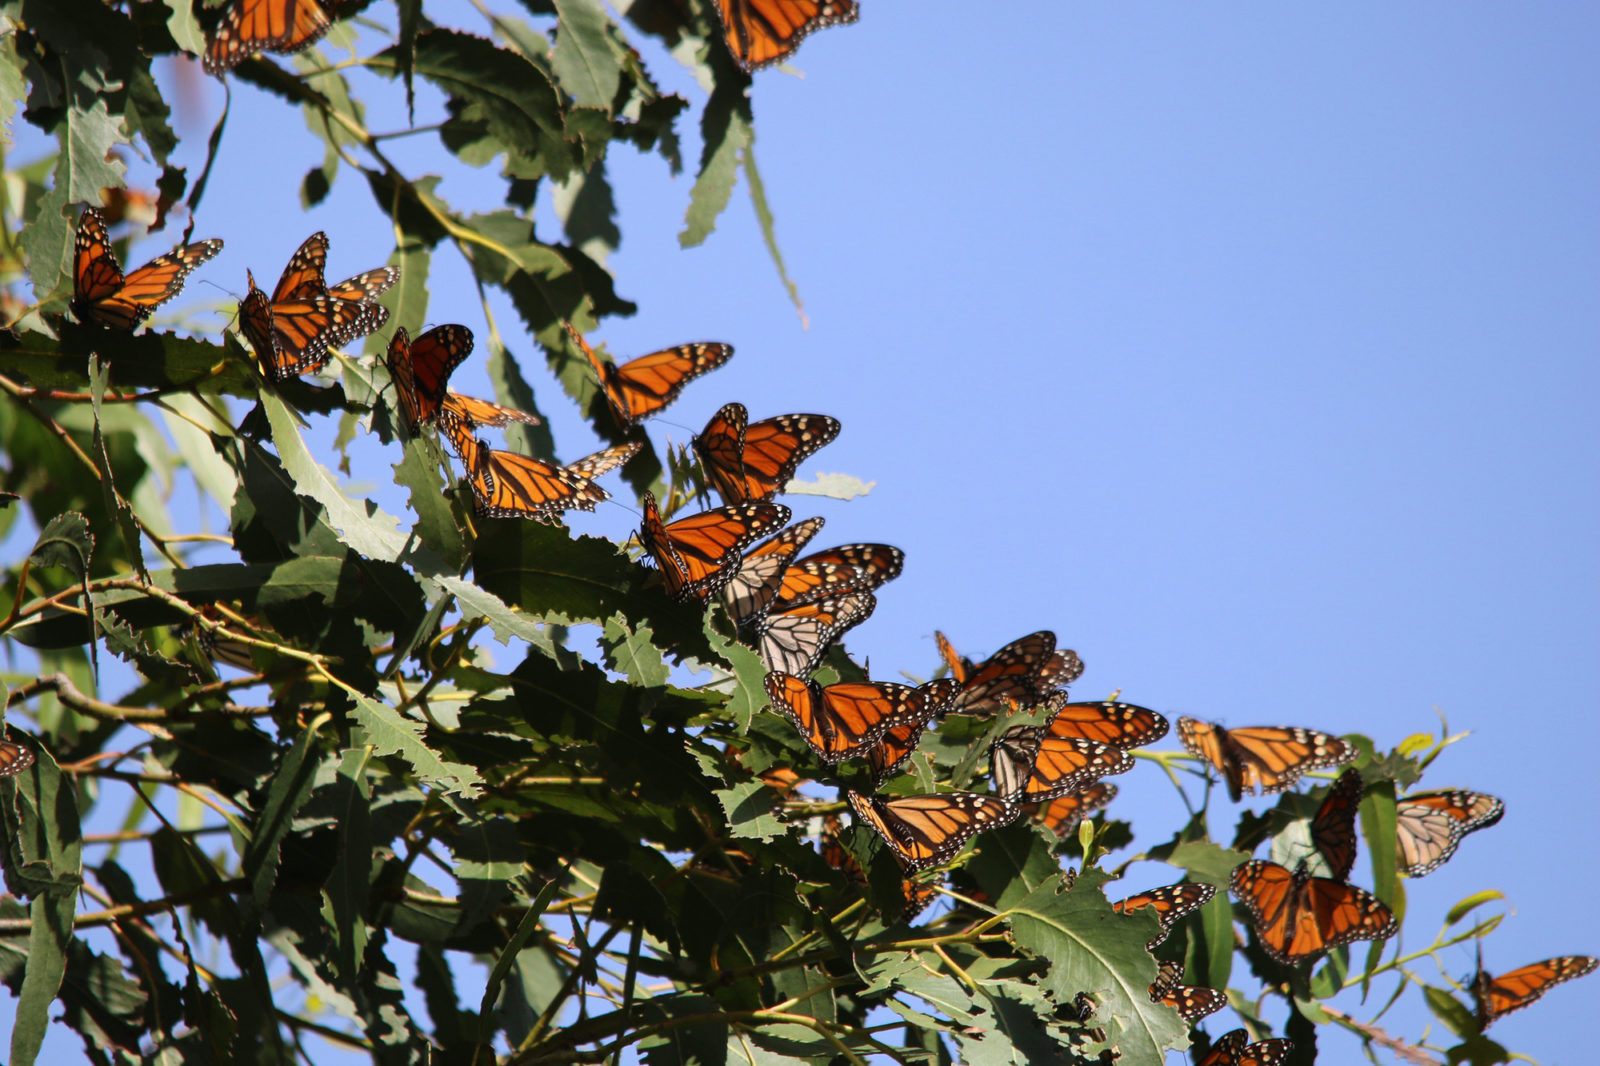 With fewer than 2,000 butterflies counted so far, Western monarch takes step closer to extinction